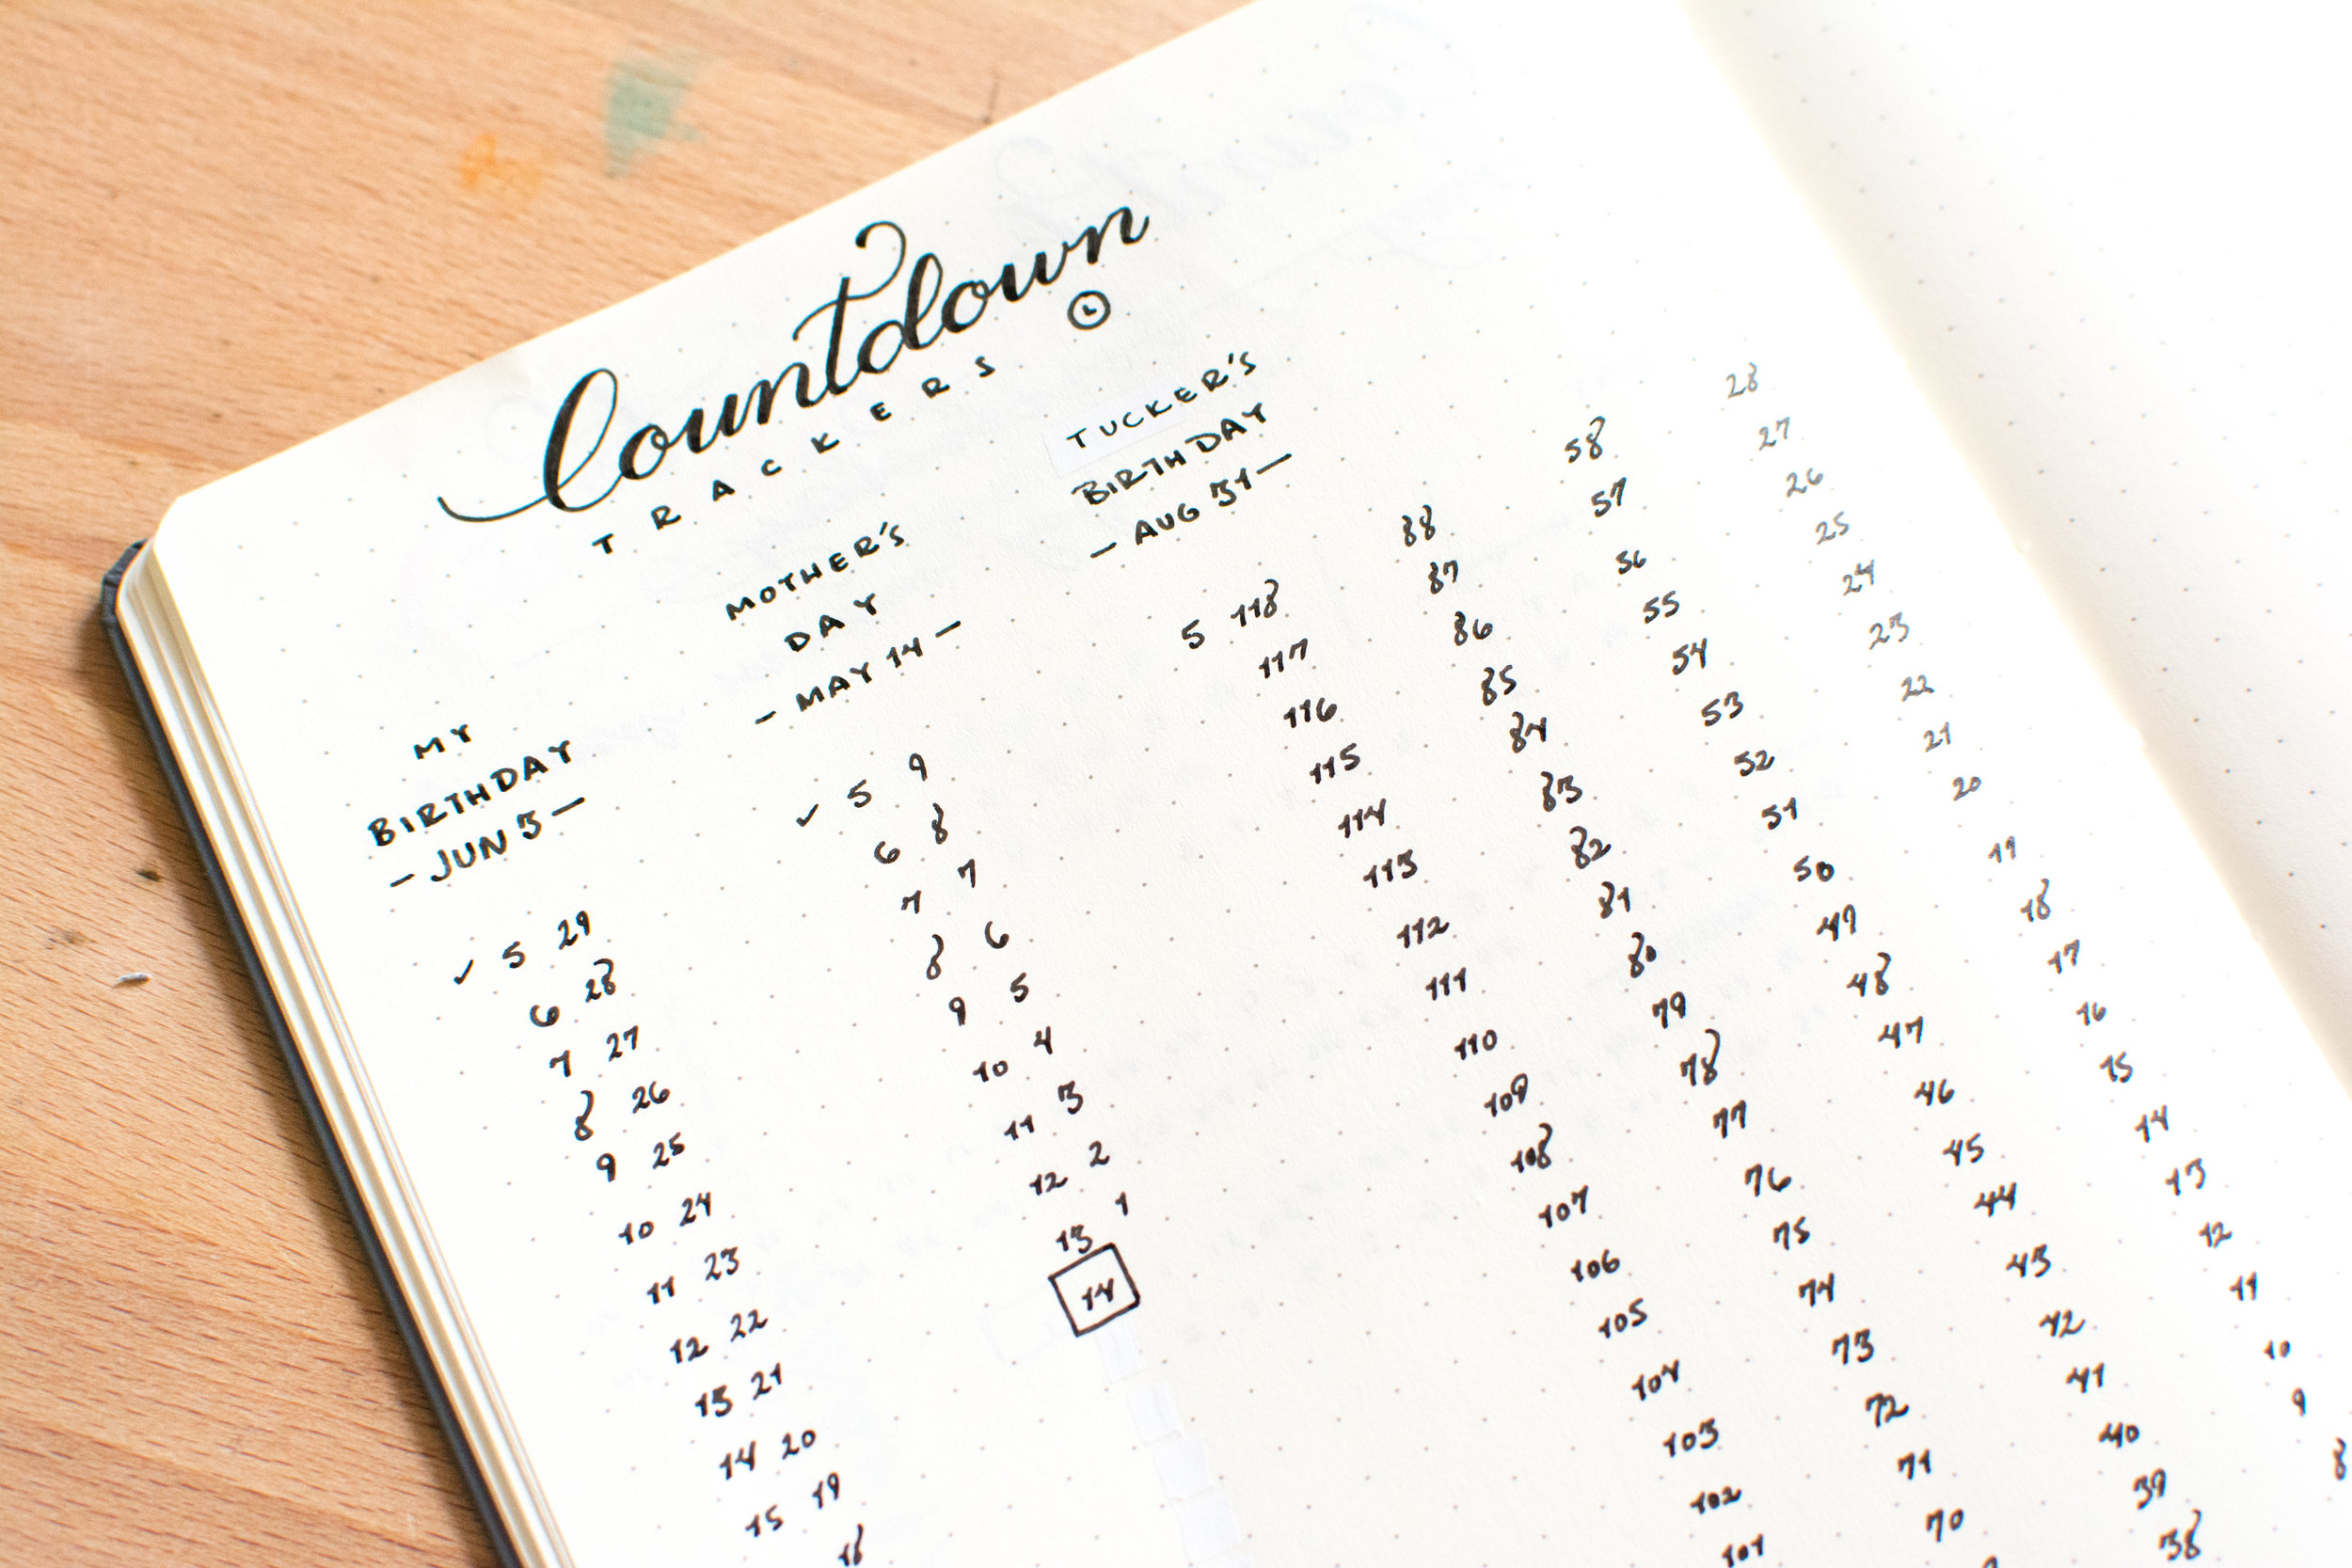 Add a Countdown Tracker to your Bullet Journal to keep track of special events